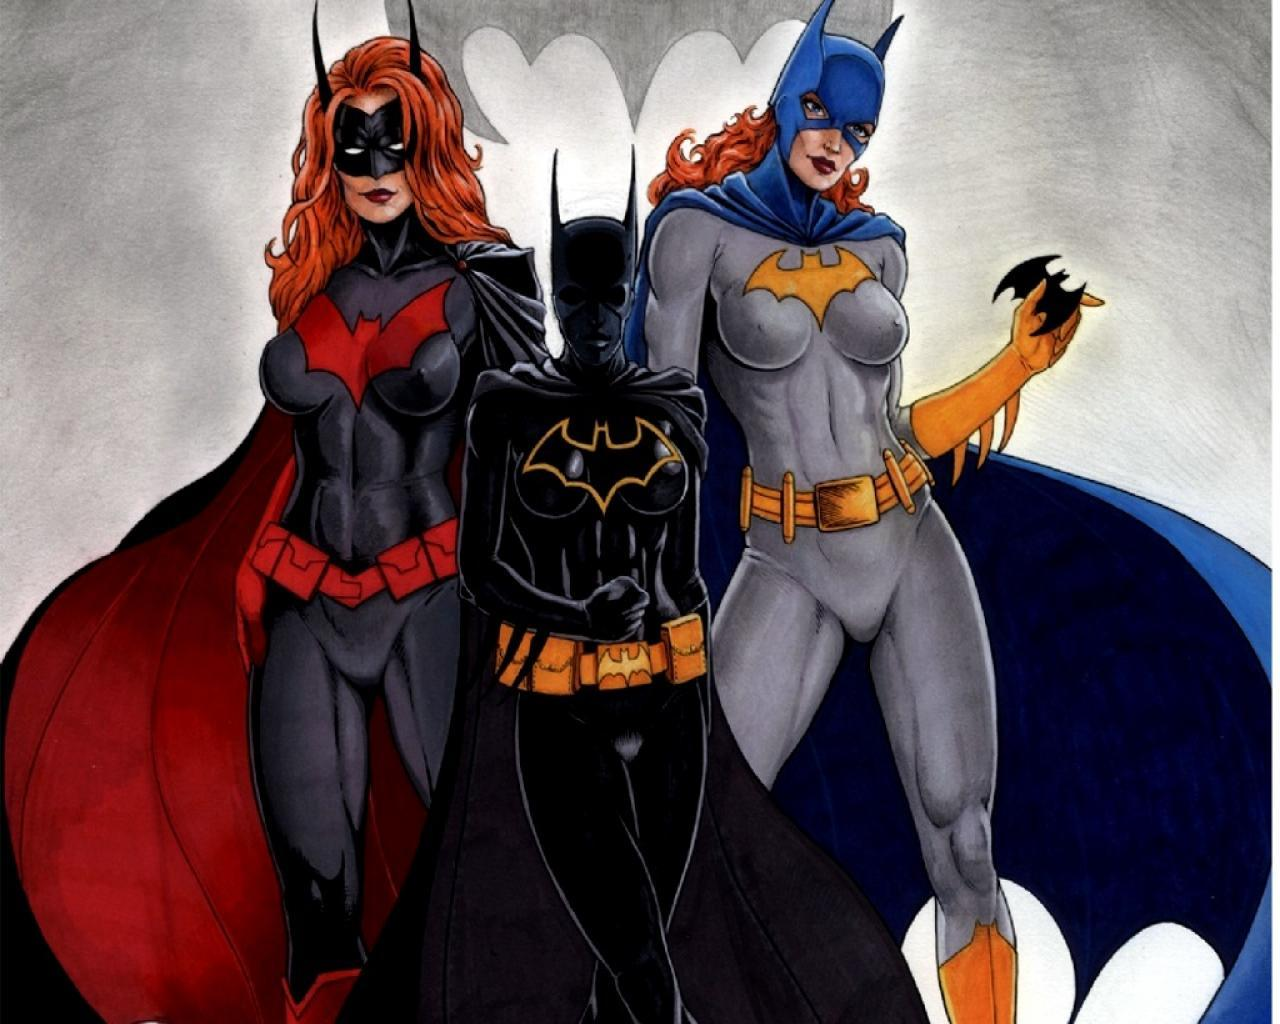 dc comics Batgirl Batwoman HD Wallpaper